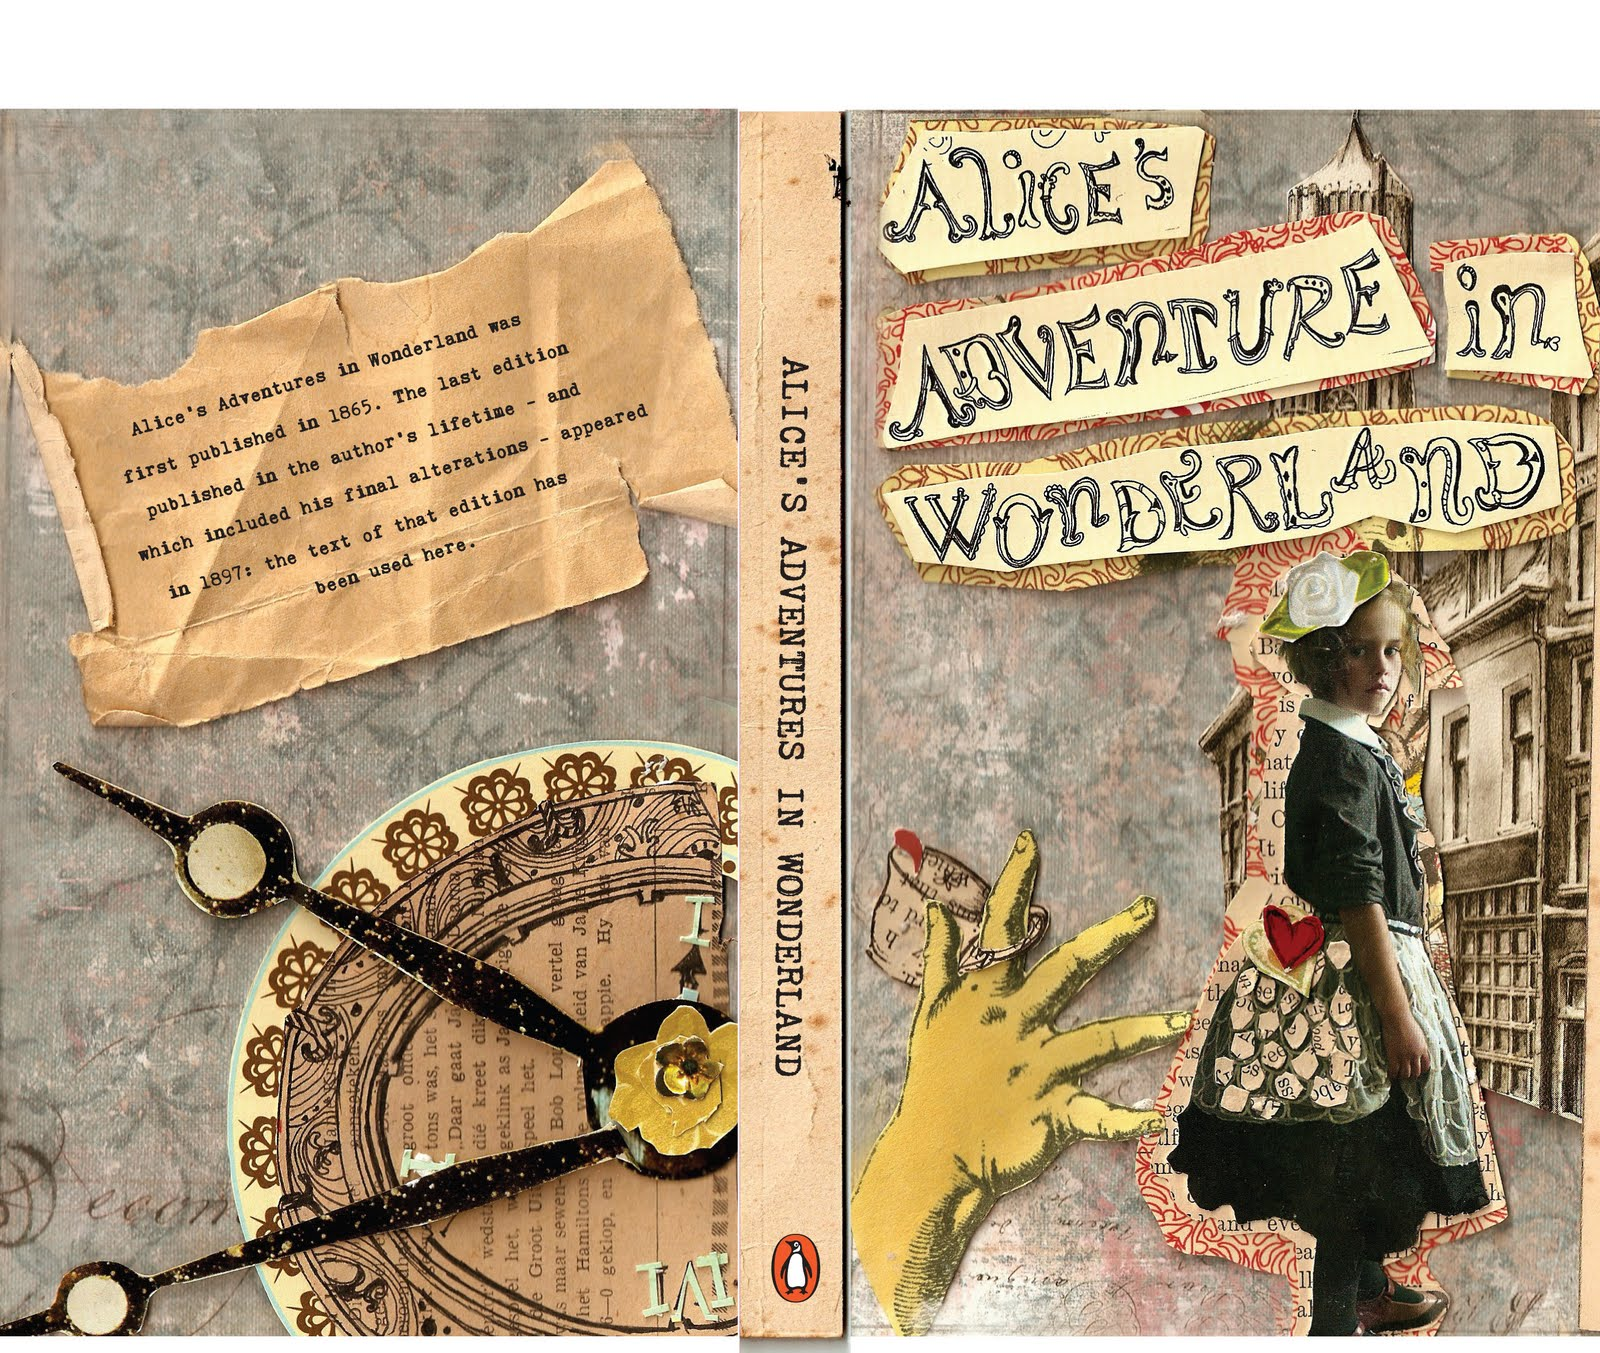 Collage Style Book Cover ~ Hooked bookworm alice s adventures in wonderland by lewis